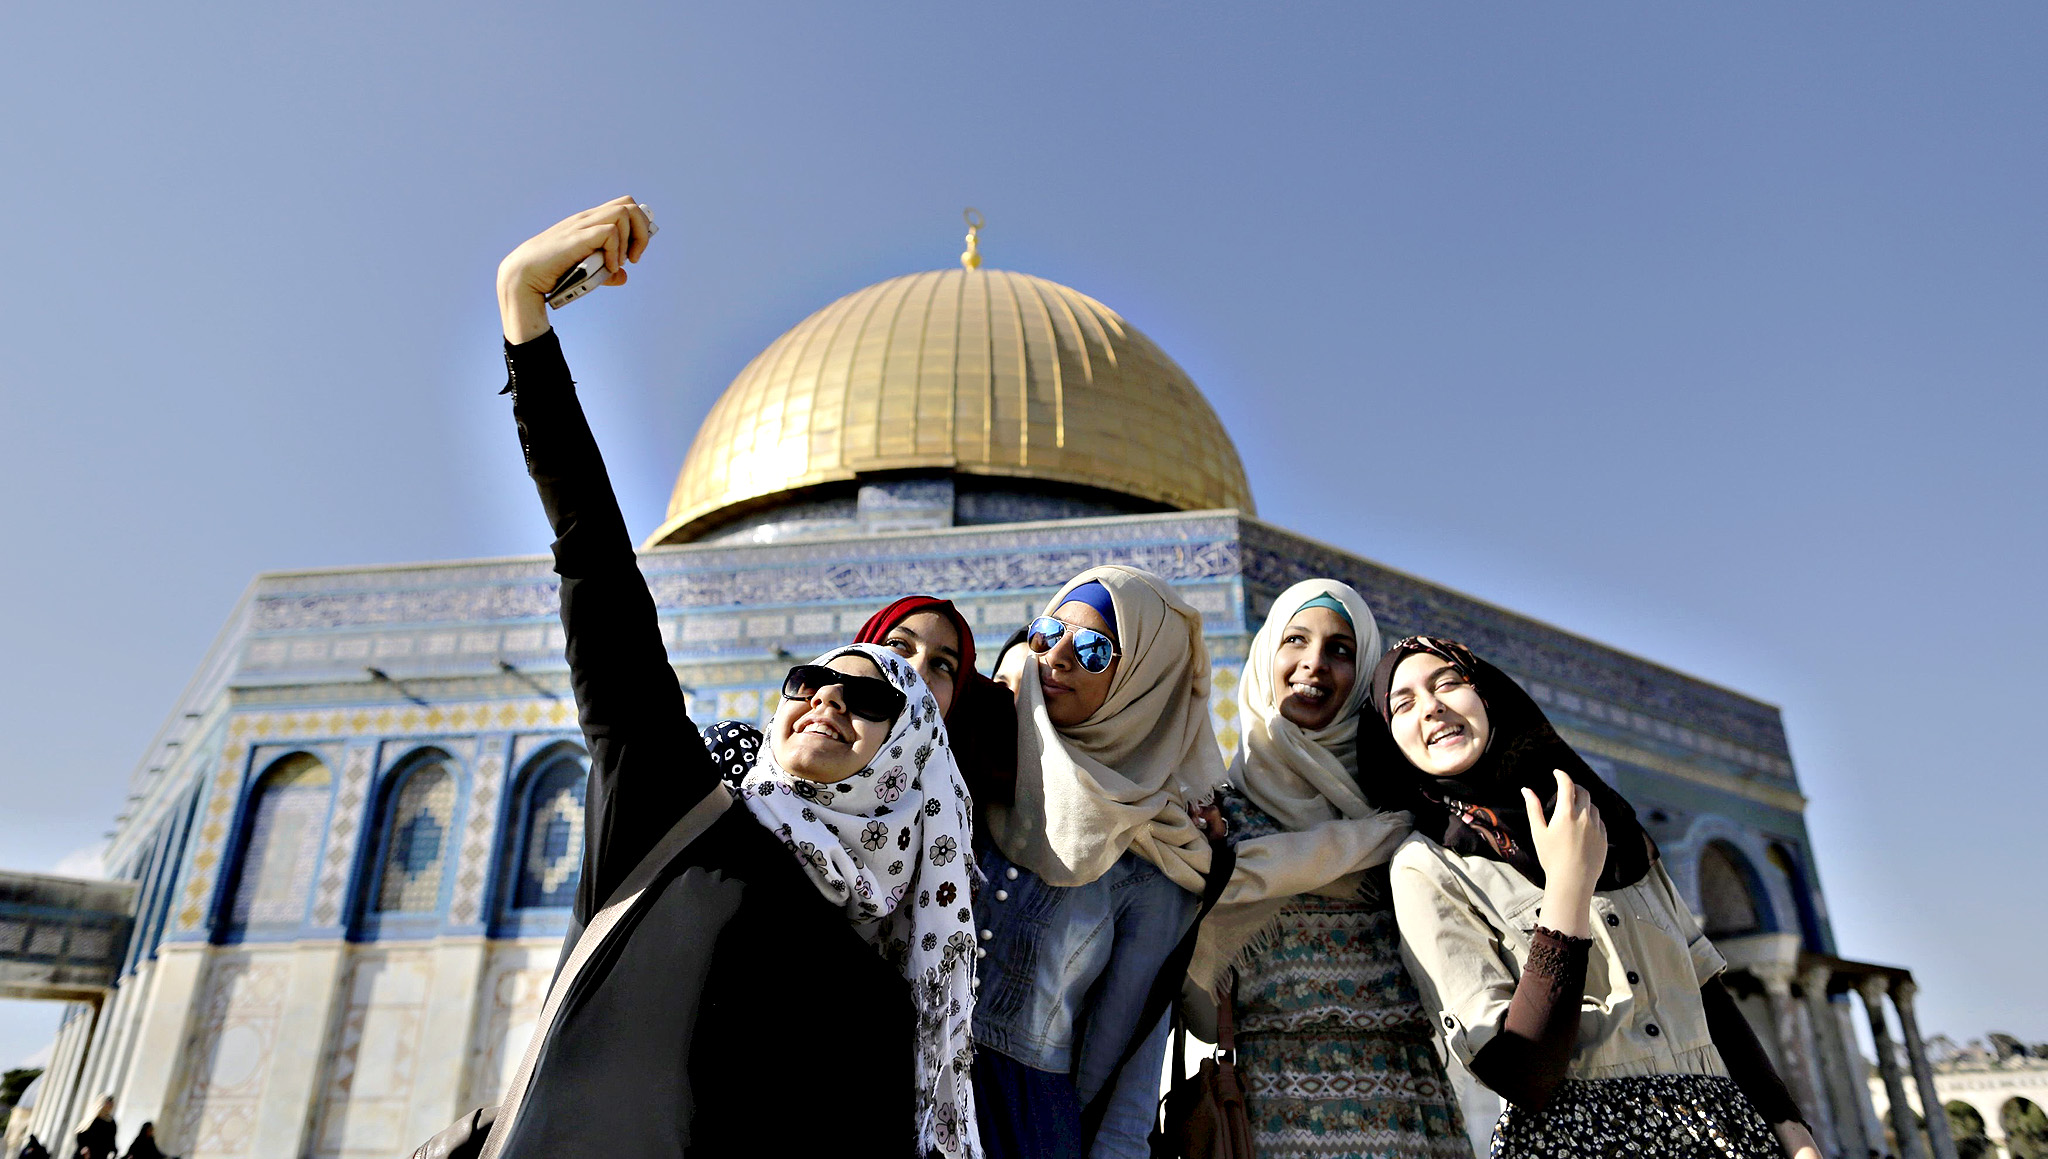 Palestinian Sanaa Abu Jaudi, from the West Bank city of Jenin, takes a selfie photo with friends in front of the Dome of the Rock on the compound known to Muslims as Noble Sanctuary and to Jews as Temple Mount, in Jerusalem's Old City, during the holy month of Ramadan